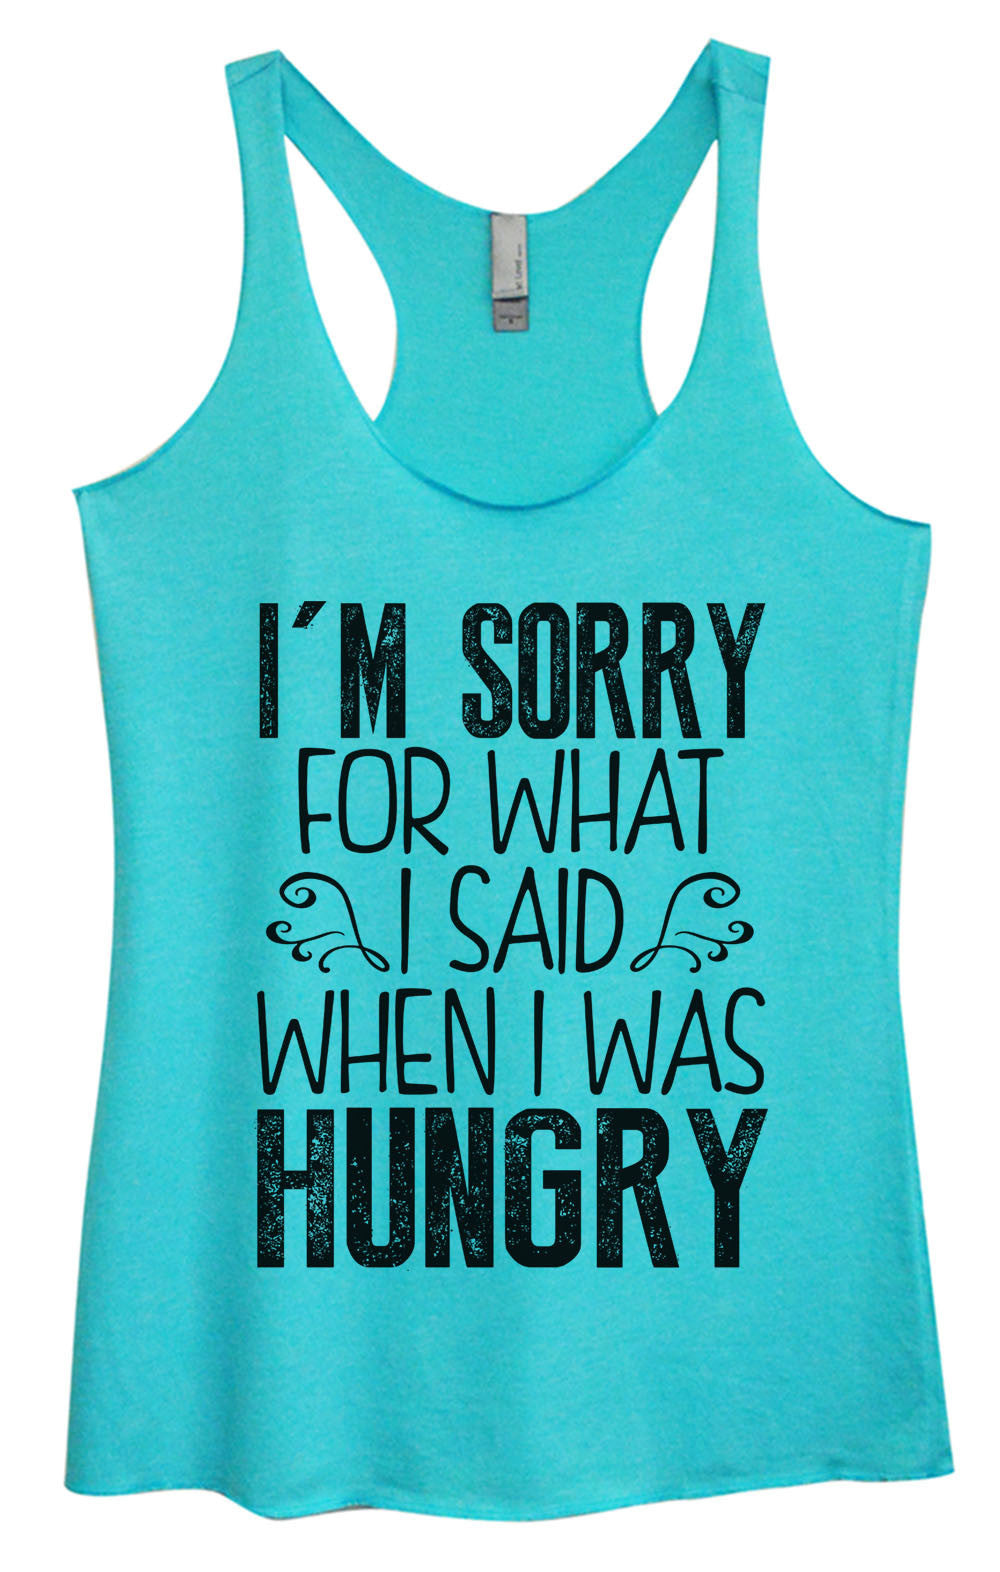 Womens Fashion Triblend Tank Top - I'm Sorry For What I Said When I Was Hungry - Tri-952 - Funny Shirts Tank Tops Burnouts and Triblends  - 2